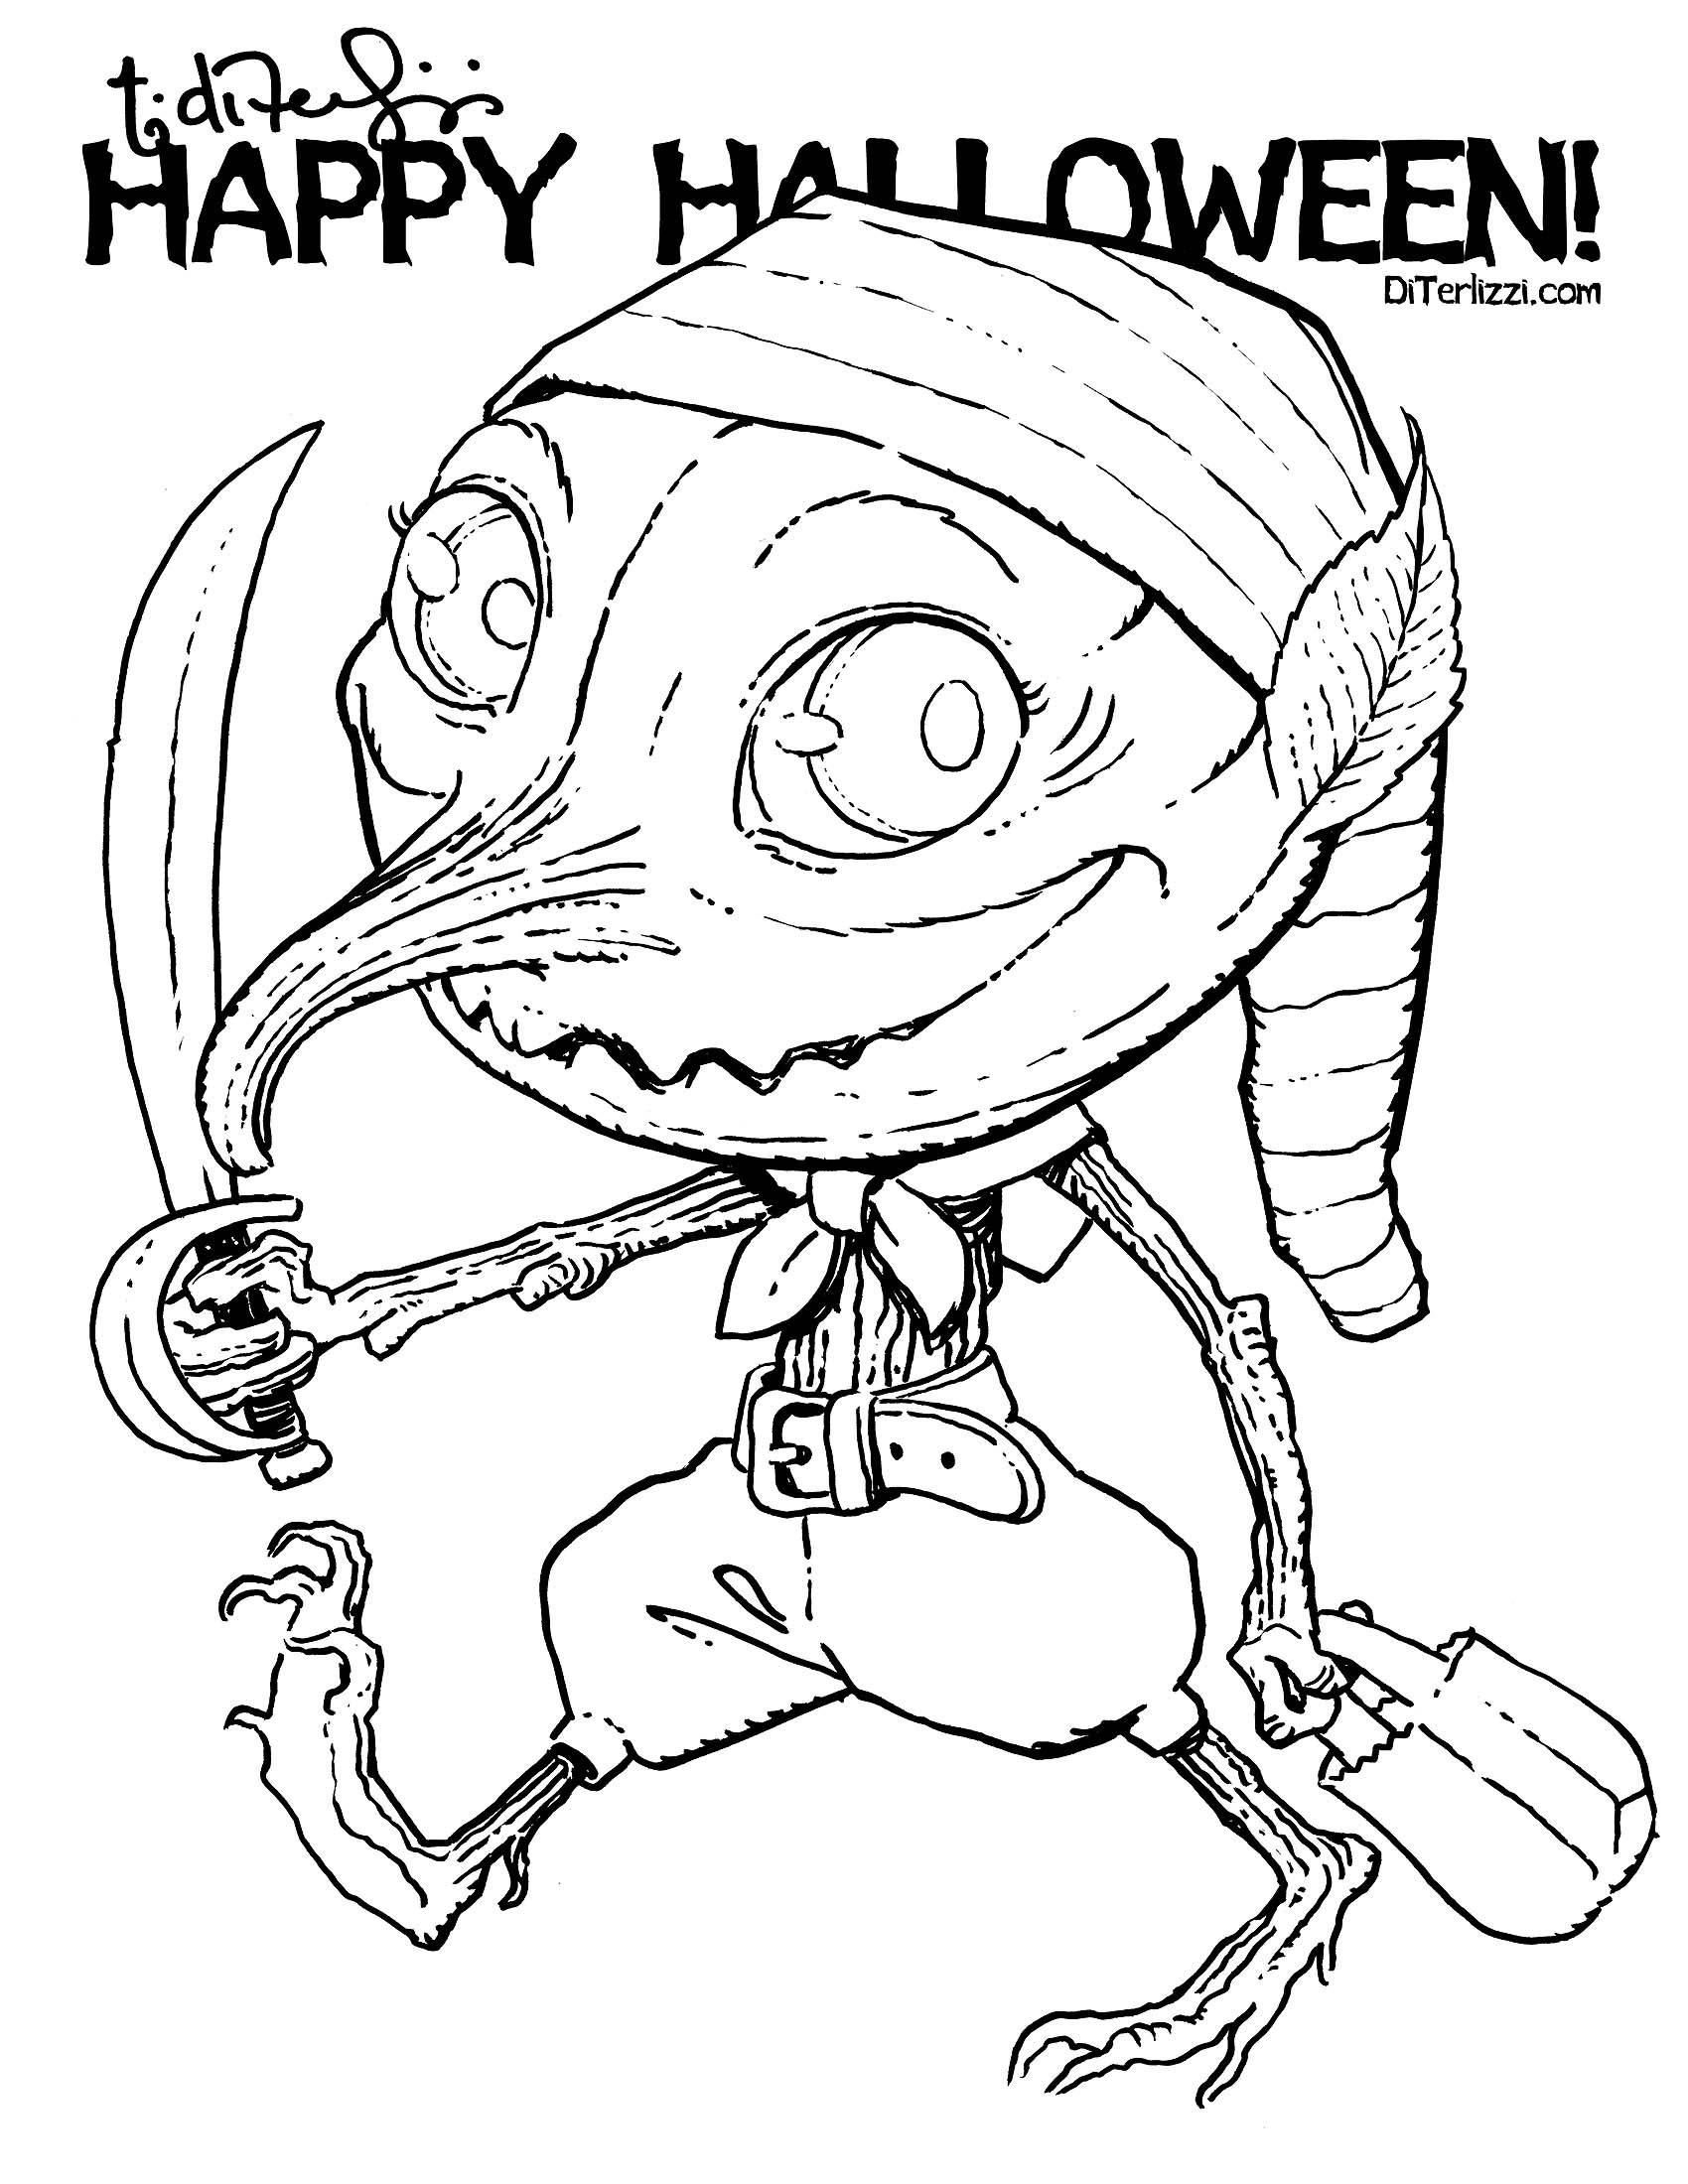 Halloween Coloring Pages From Tony DiTerlizzi